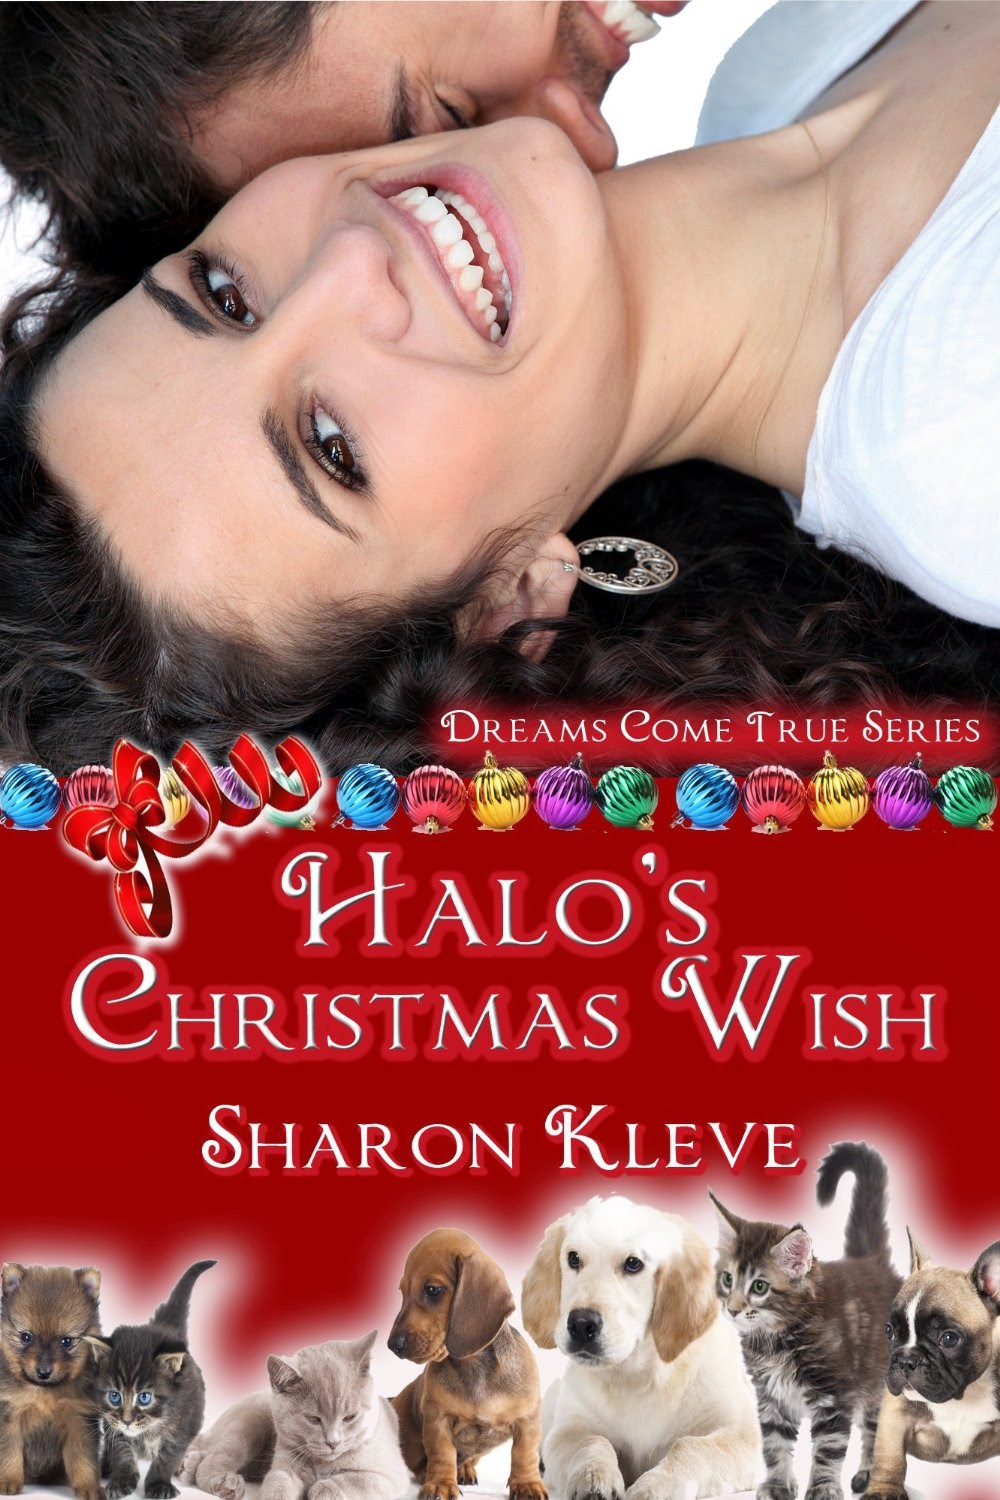 http://www.amazon.com/Halos-Christmas-Wish-Dreams-Come-ebook/dp/B00F4M2N6S/ref=sr_1_23?ie=UTF8&qid=1421687207&sr=8-23&keywords=sharon+kleve